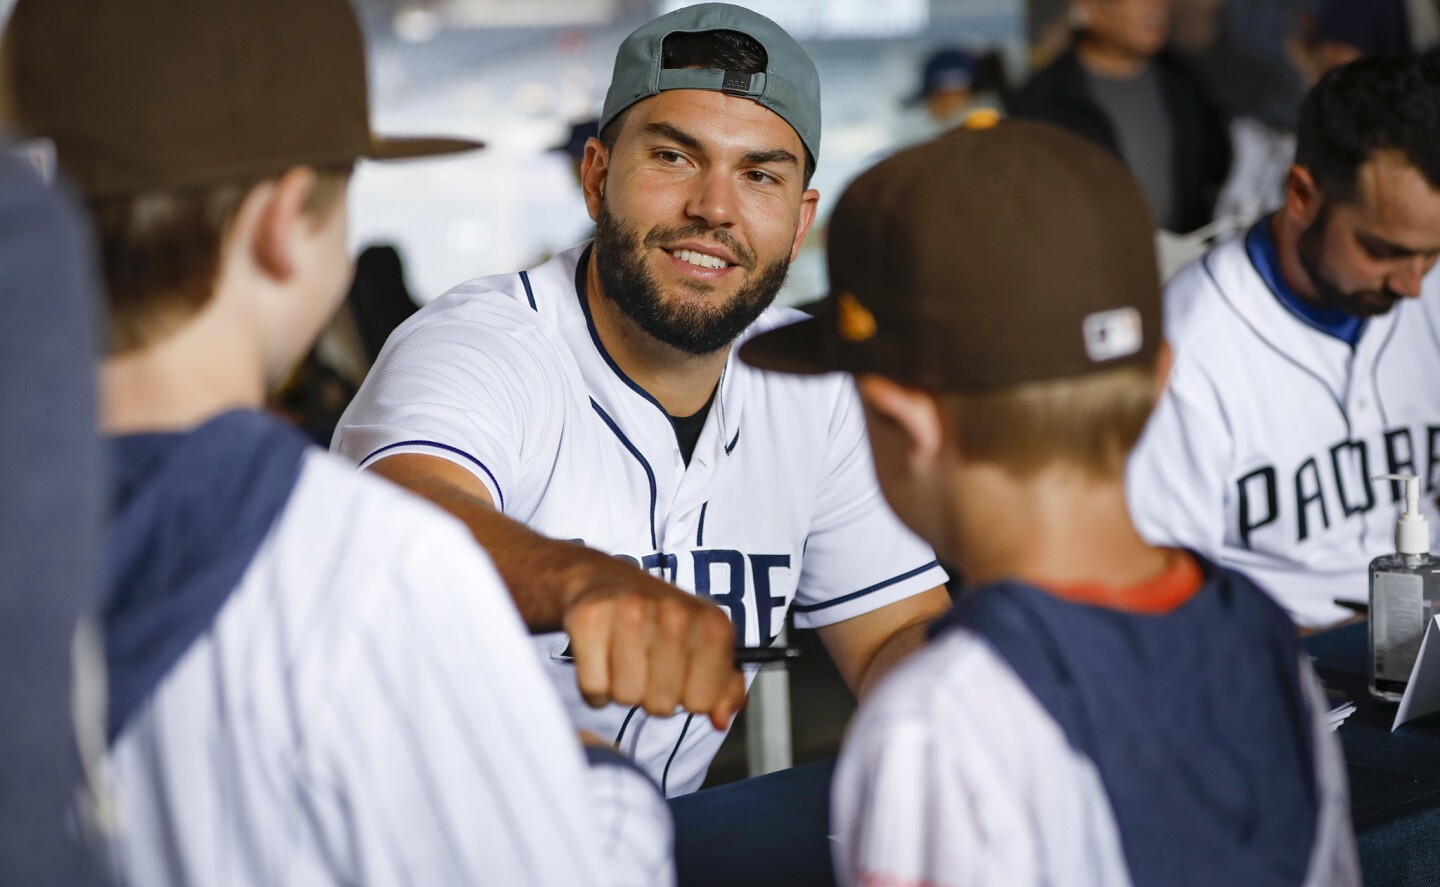 SAN DIEGO, CA 1/12/2019: Padres first baseman Eric Hosmer, fist bumps a couple of young fans during FanFest 2019, at Petco Park. Photo by Howard Lipin/San Diego Union-Tribune/Mandatory Credit: HOWARD LIPIN SAN DIEGO UNION-TRIBUNE/ZUMA PRESS